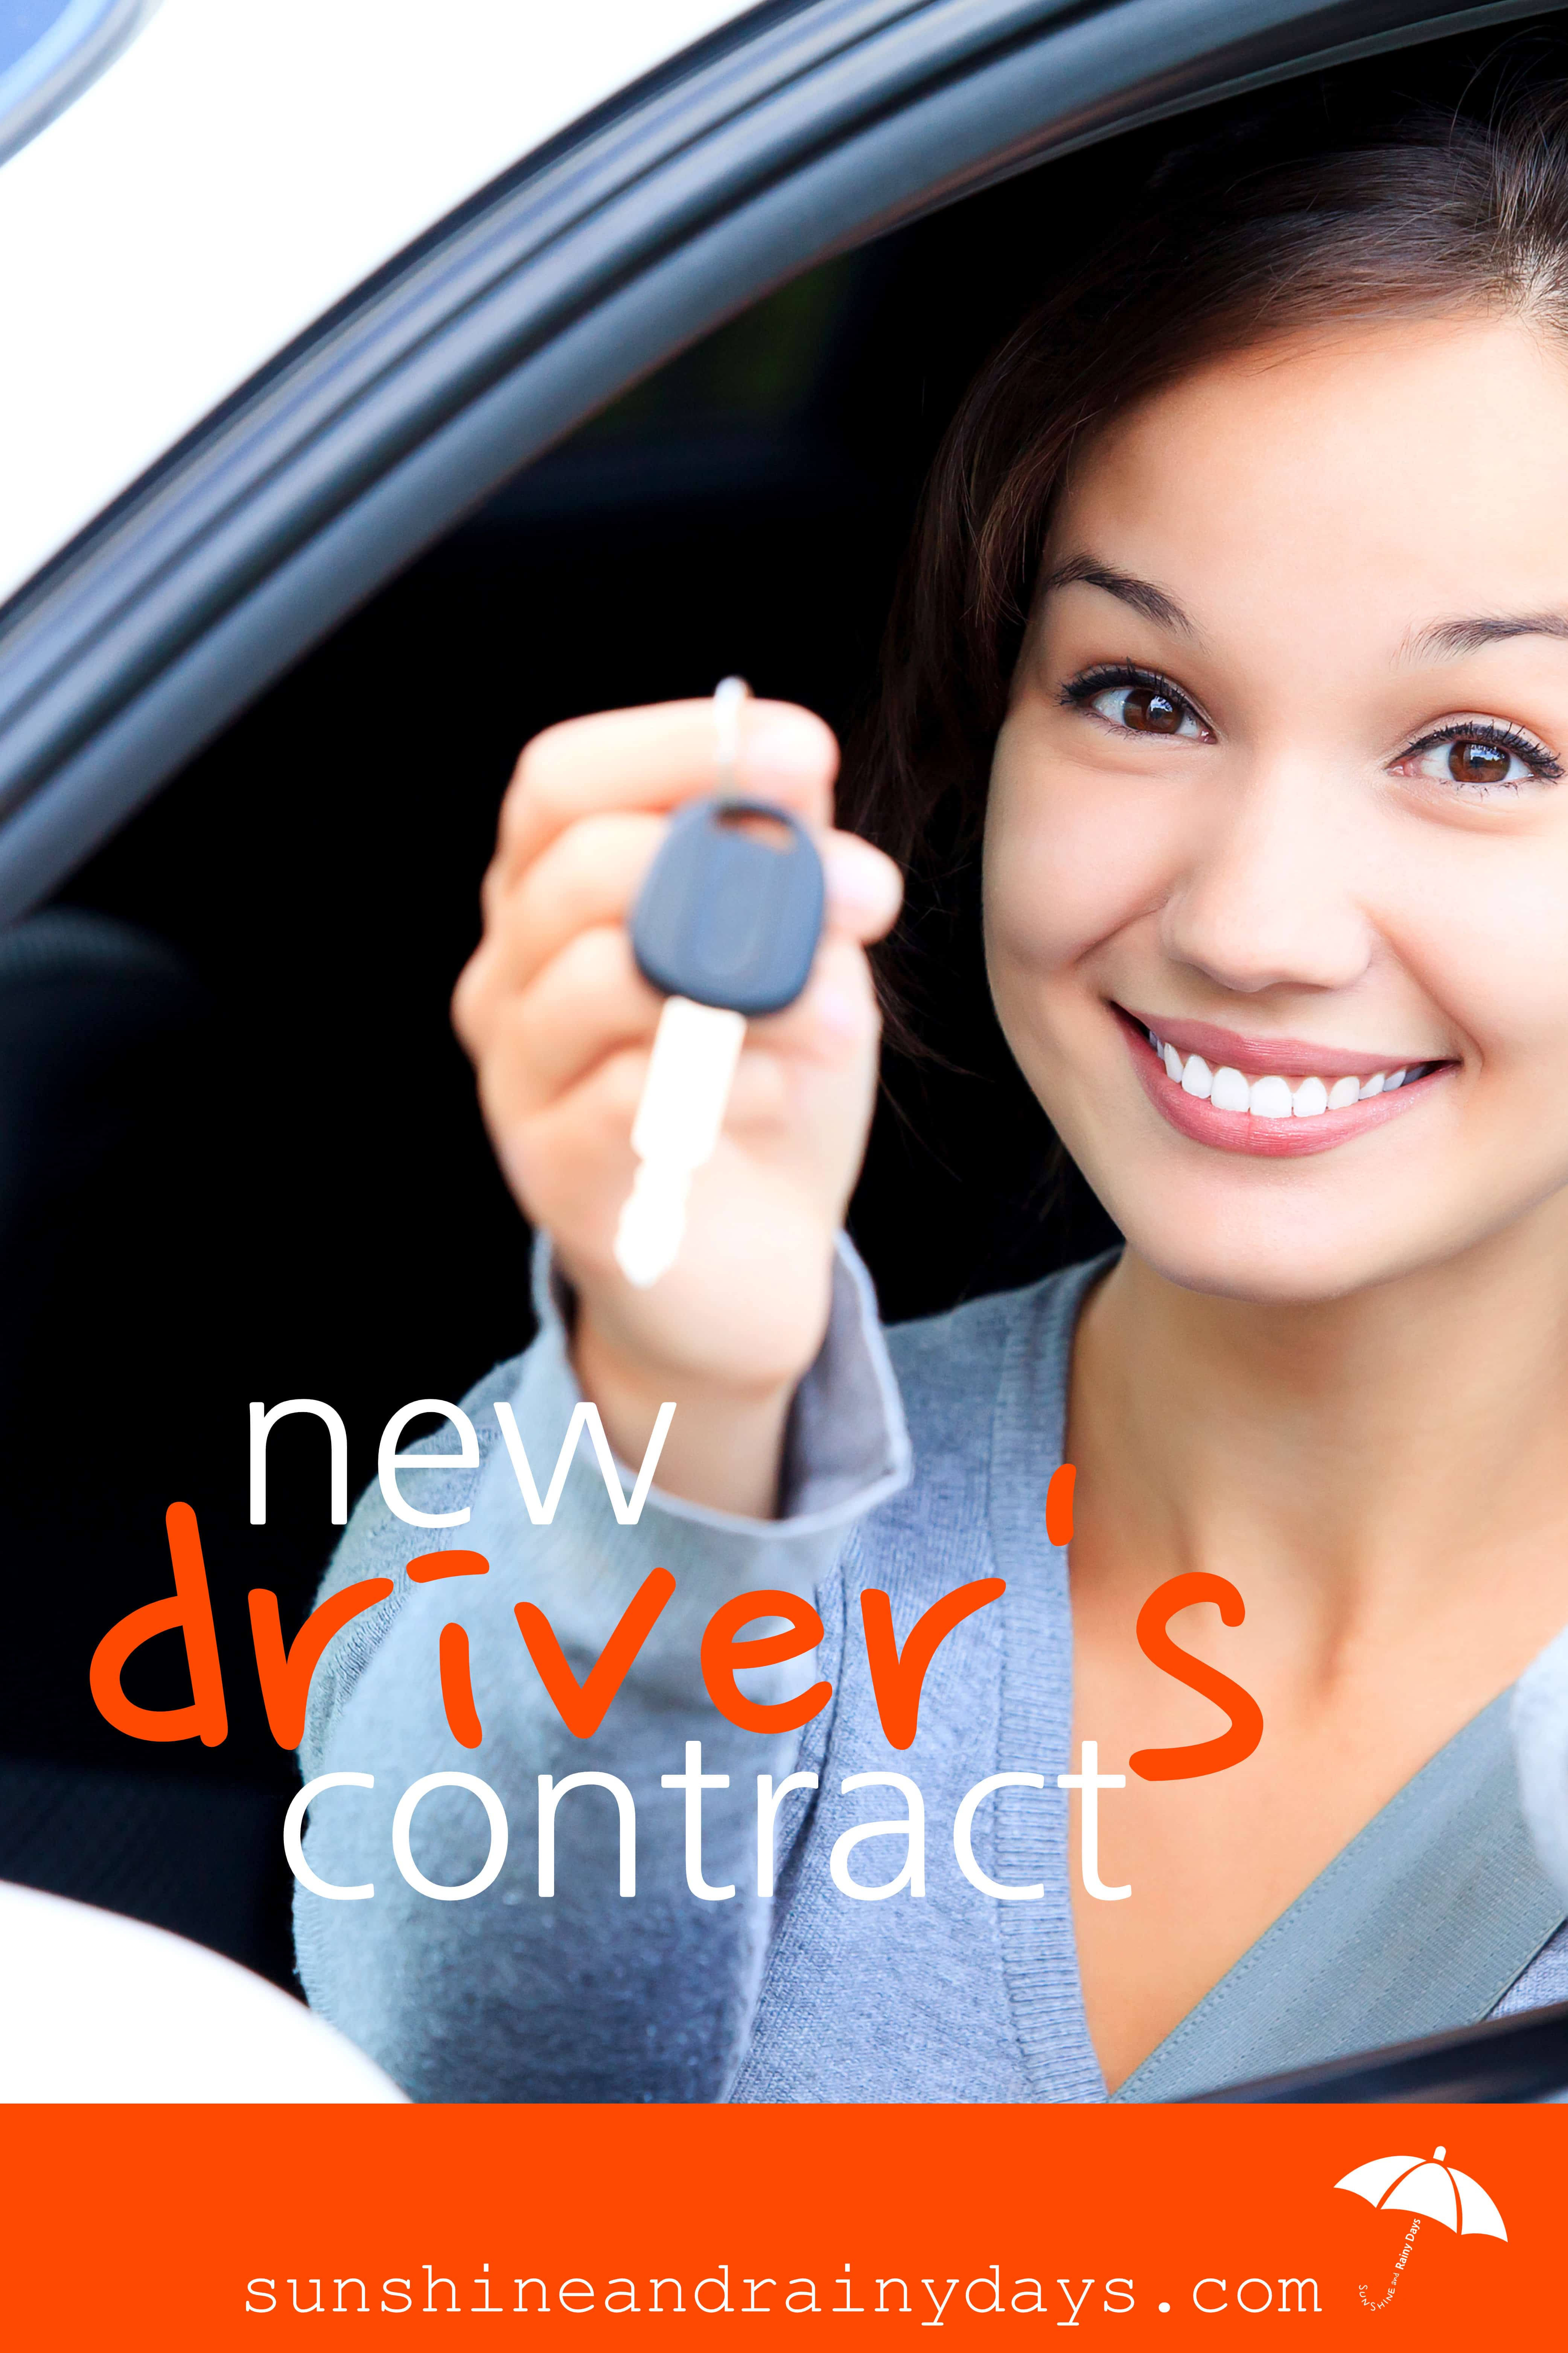 New Driver's Contract For The New Driver